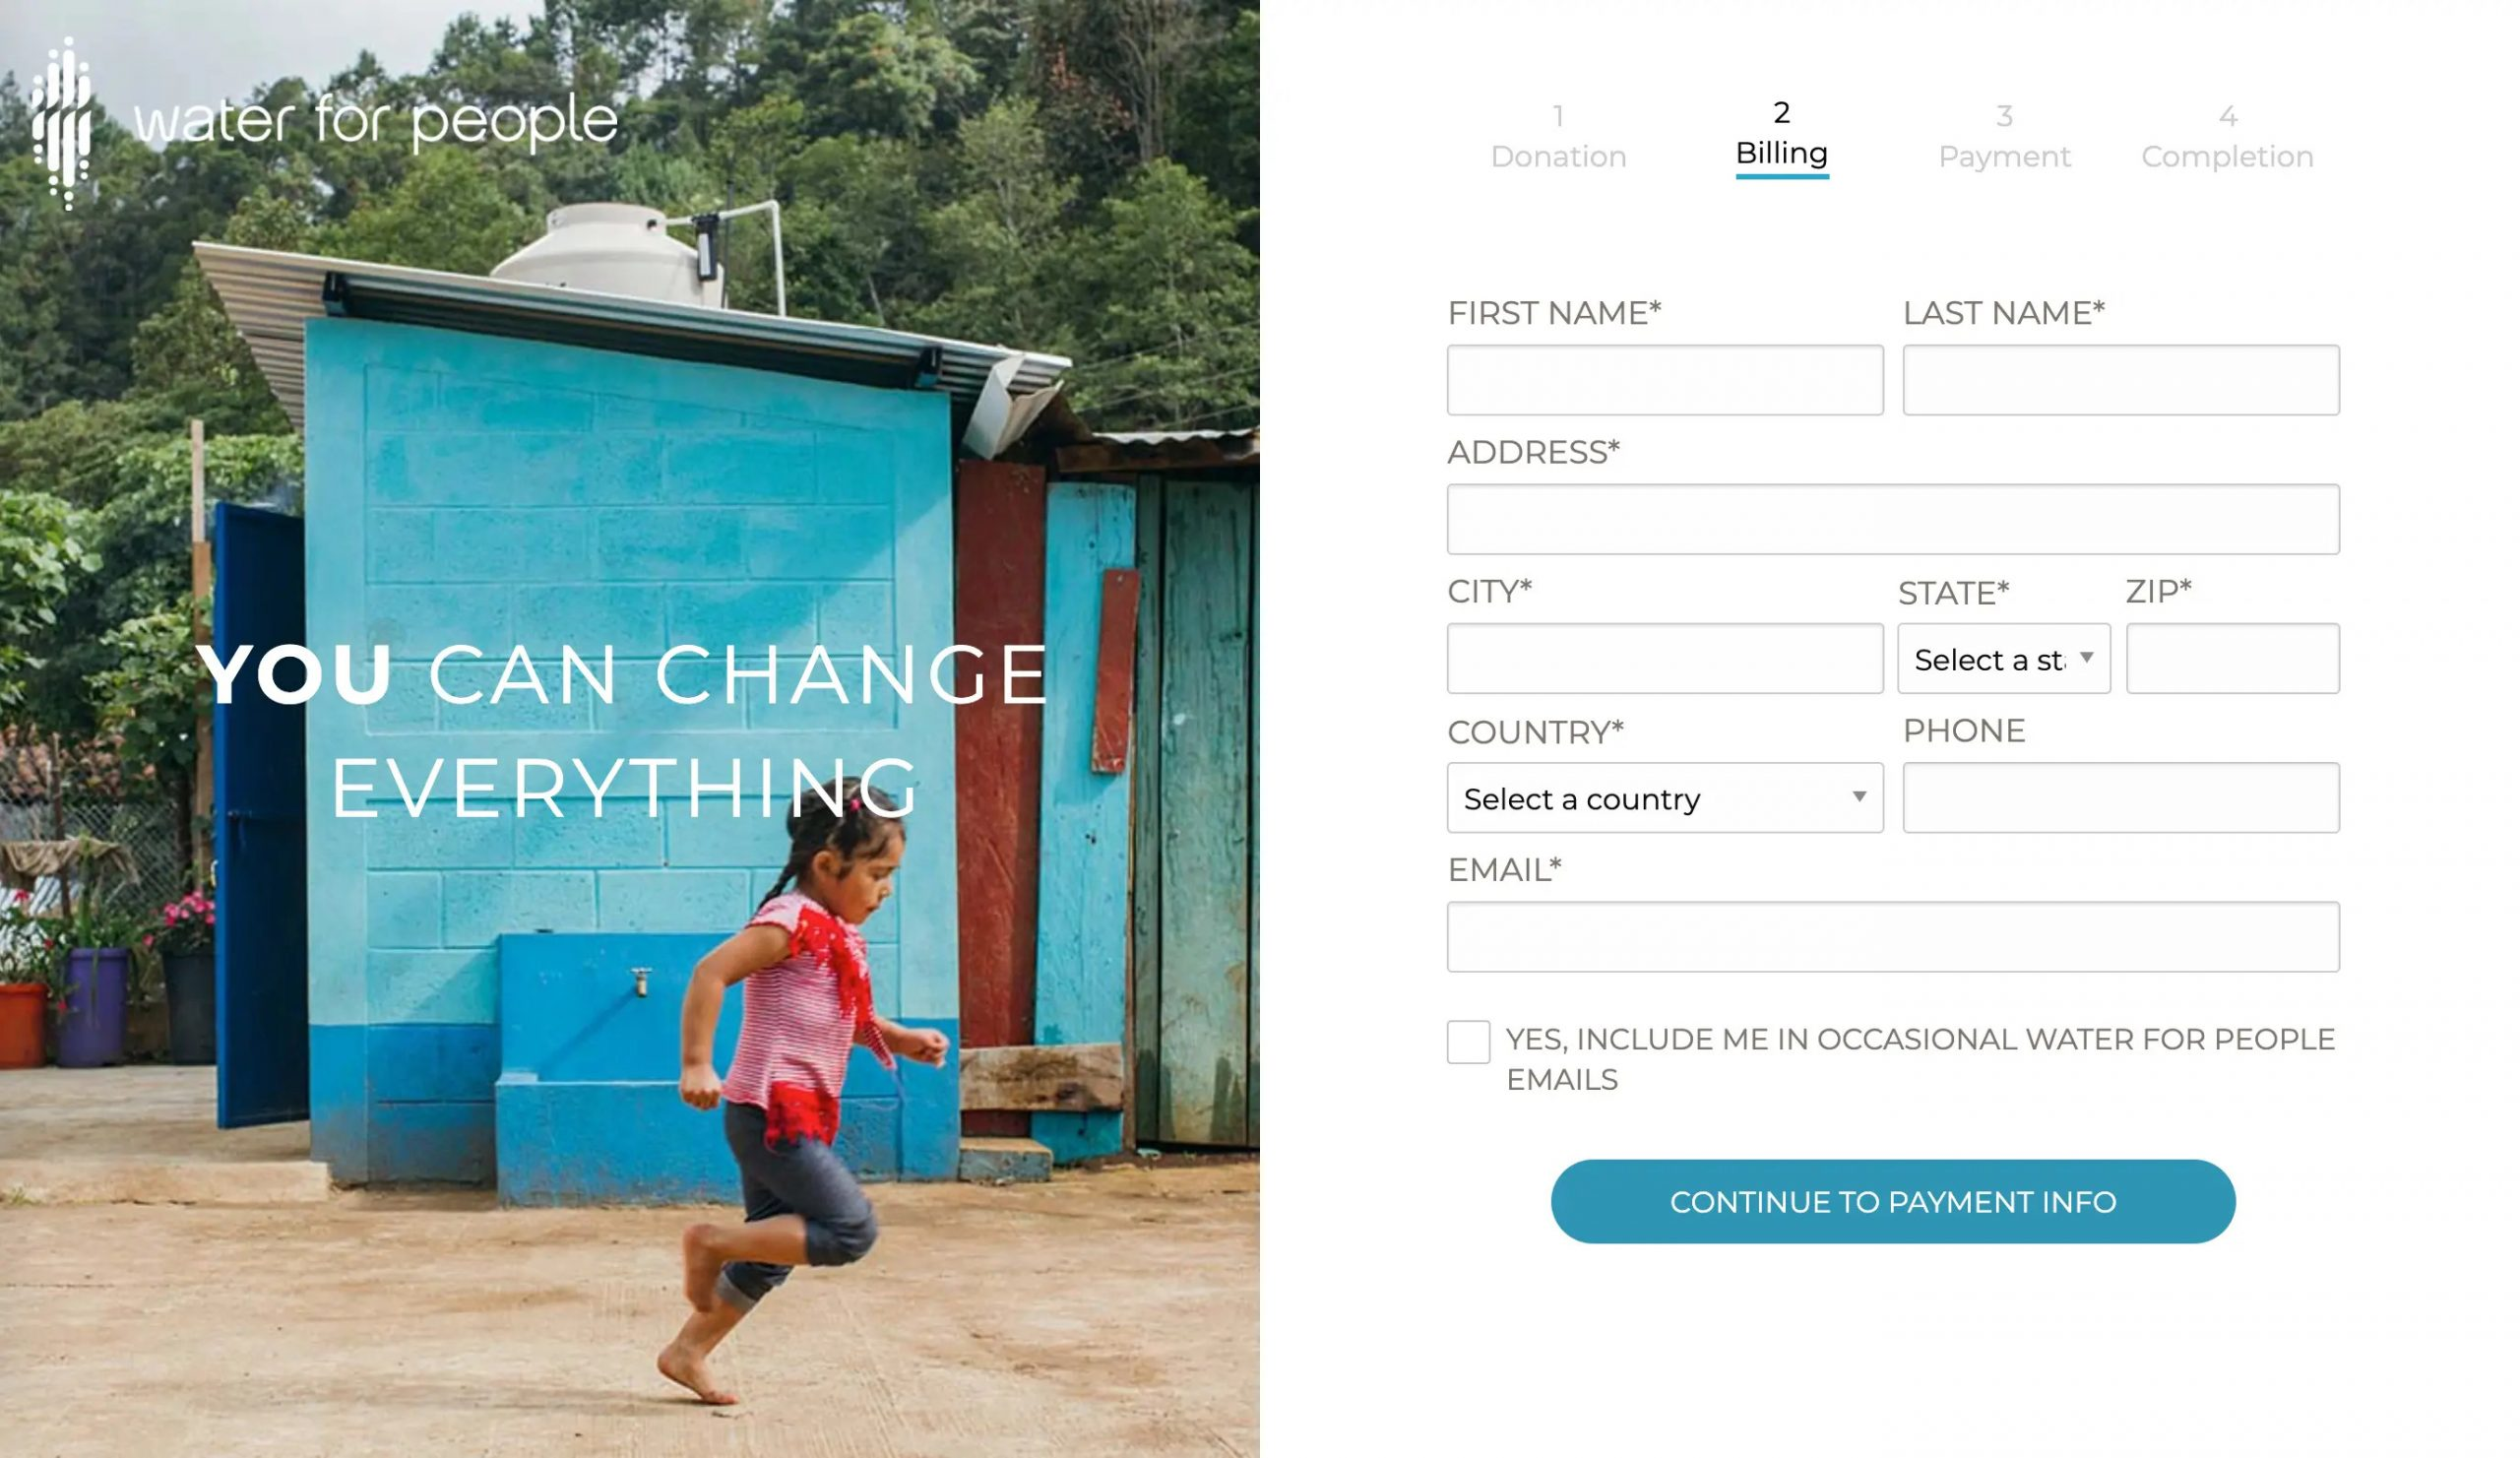 Capital Campaign Web Page: donation form example - Water for People